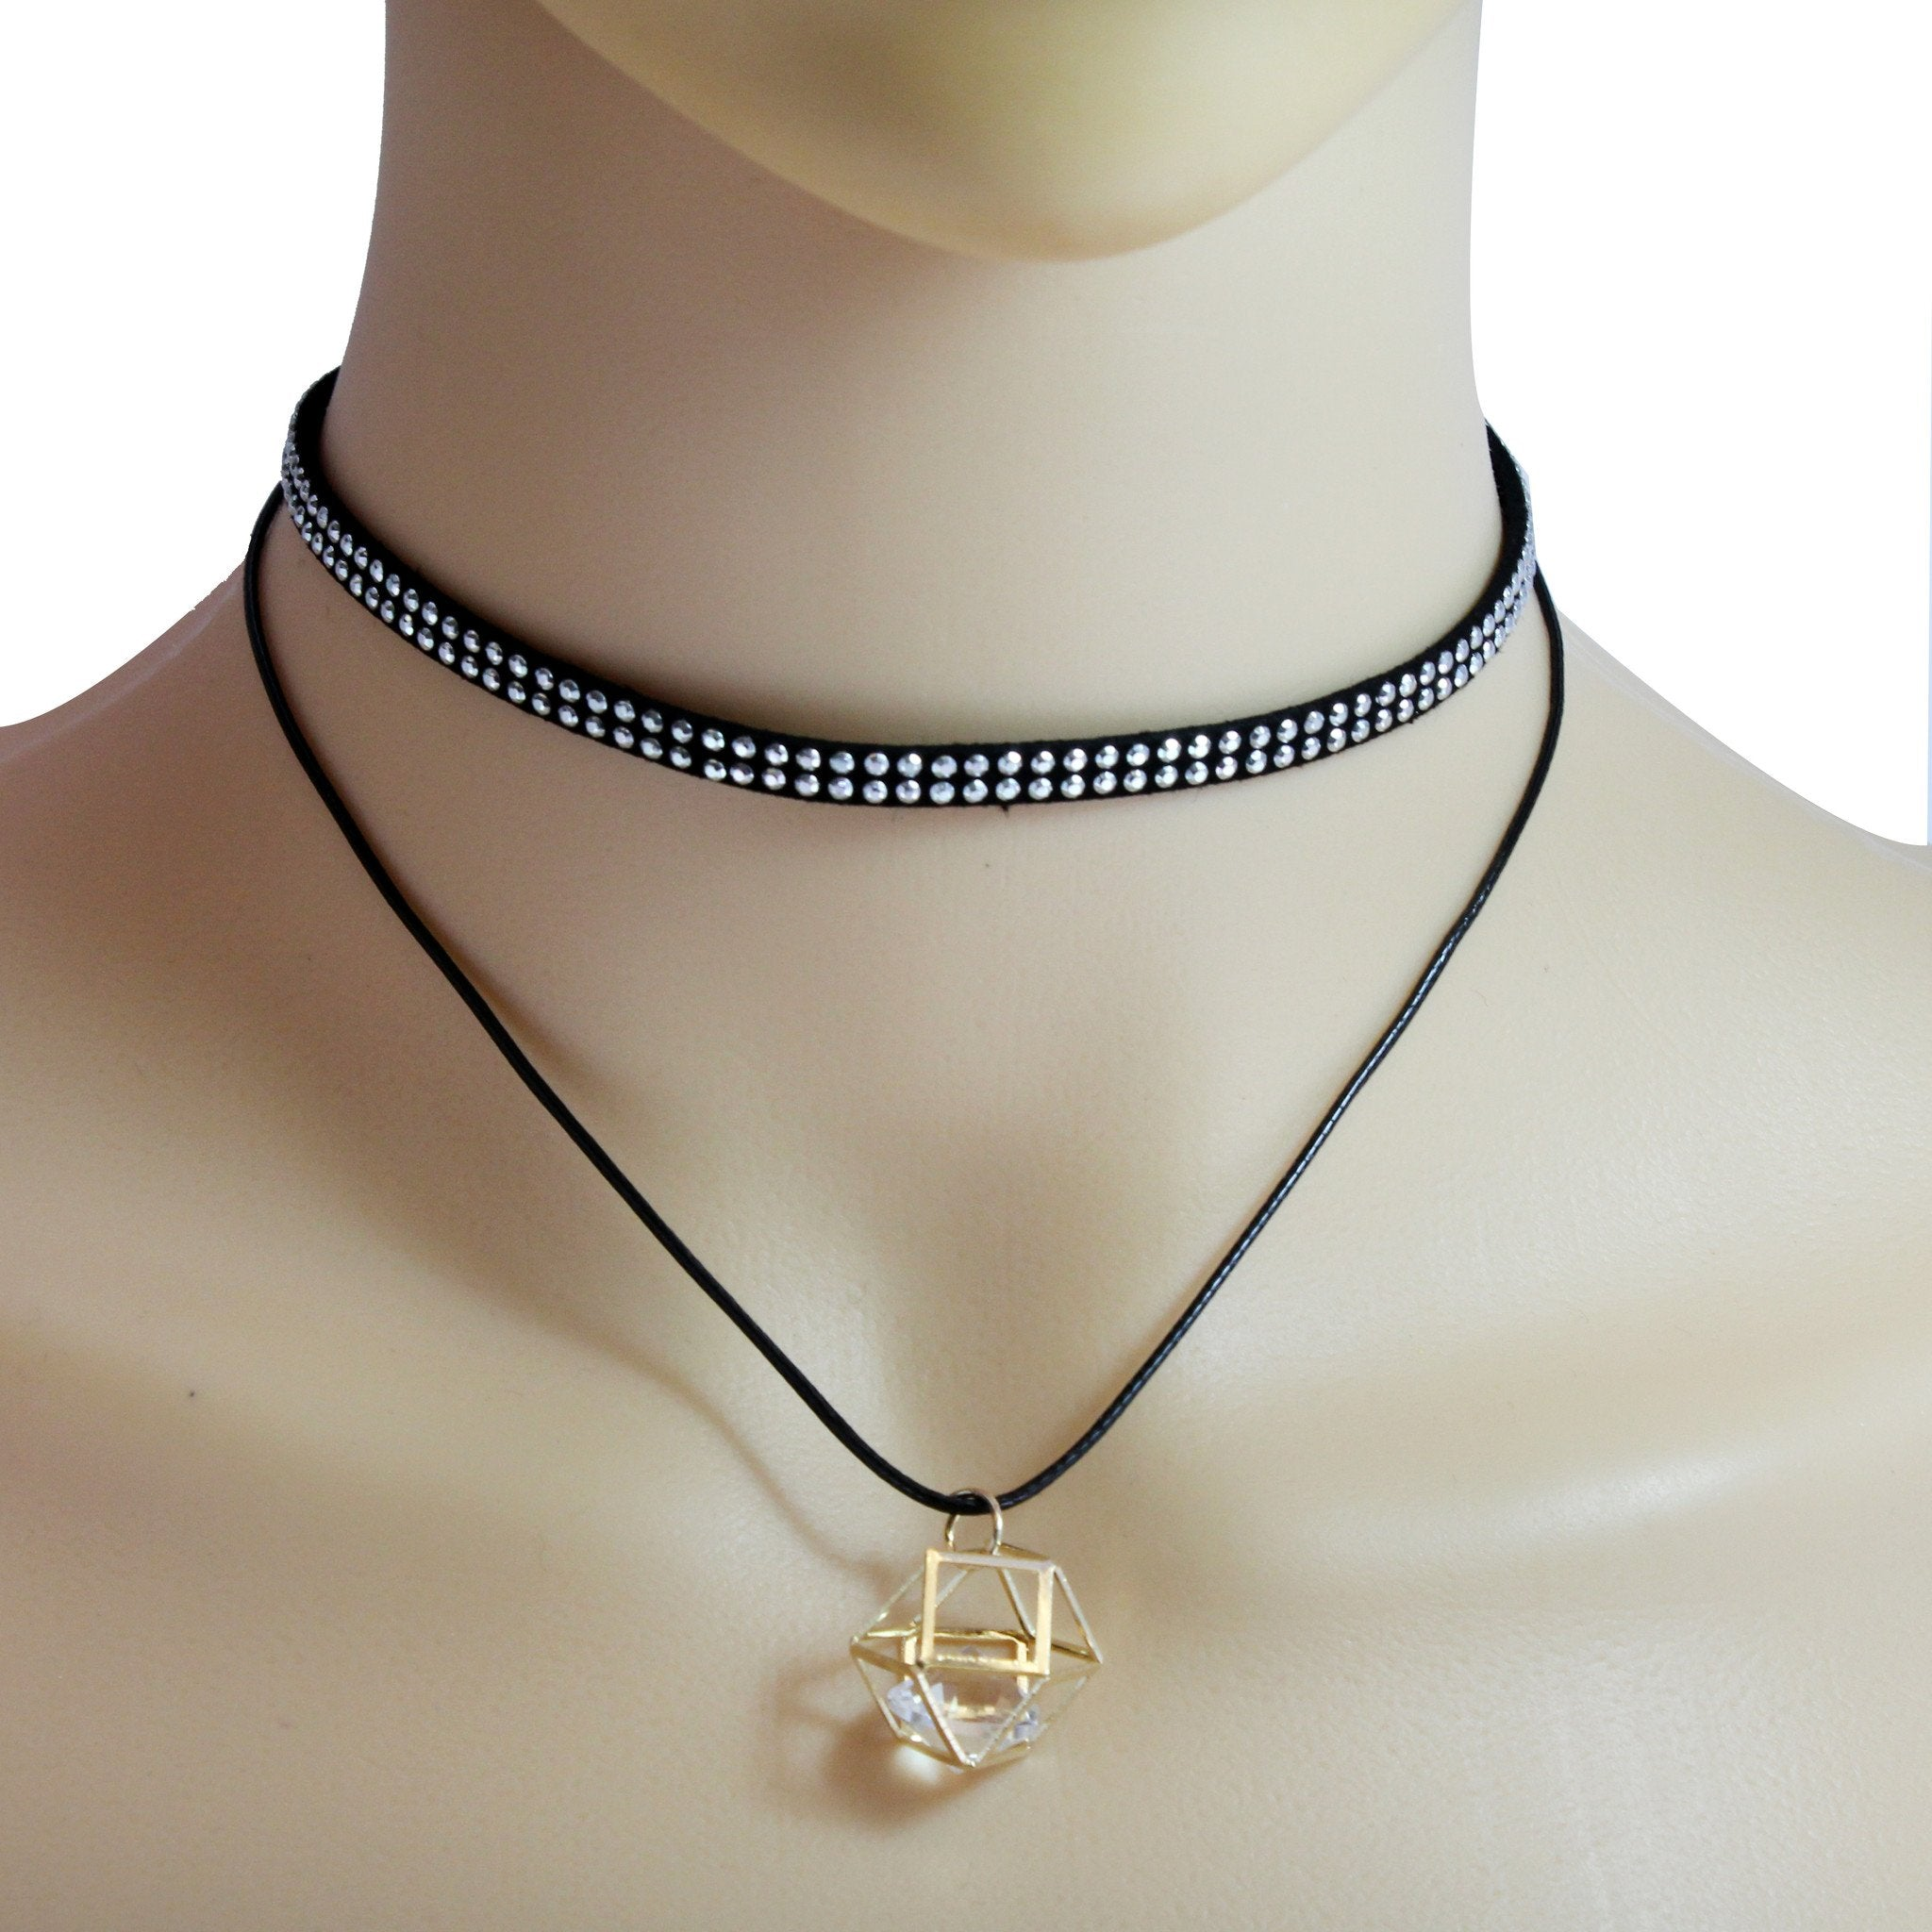 Stone Double Layered Choker Necklace